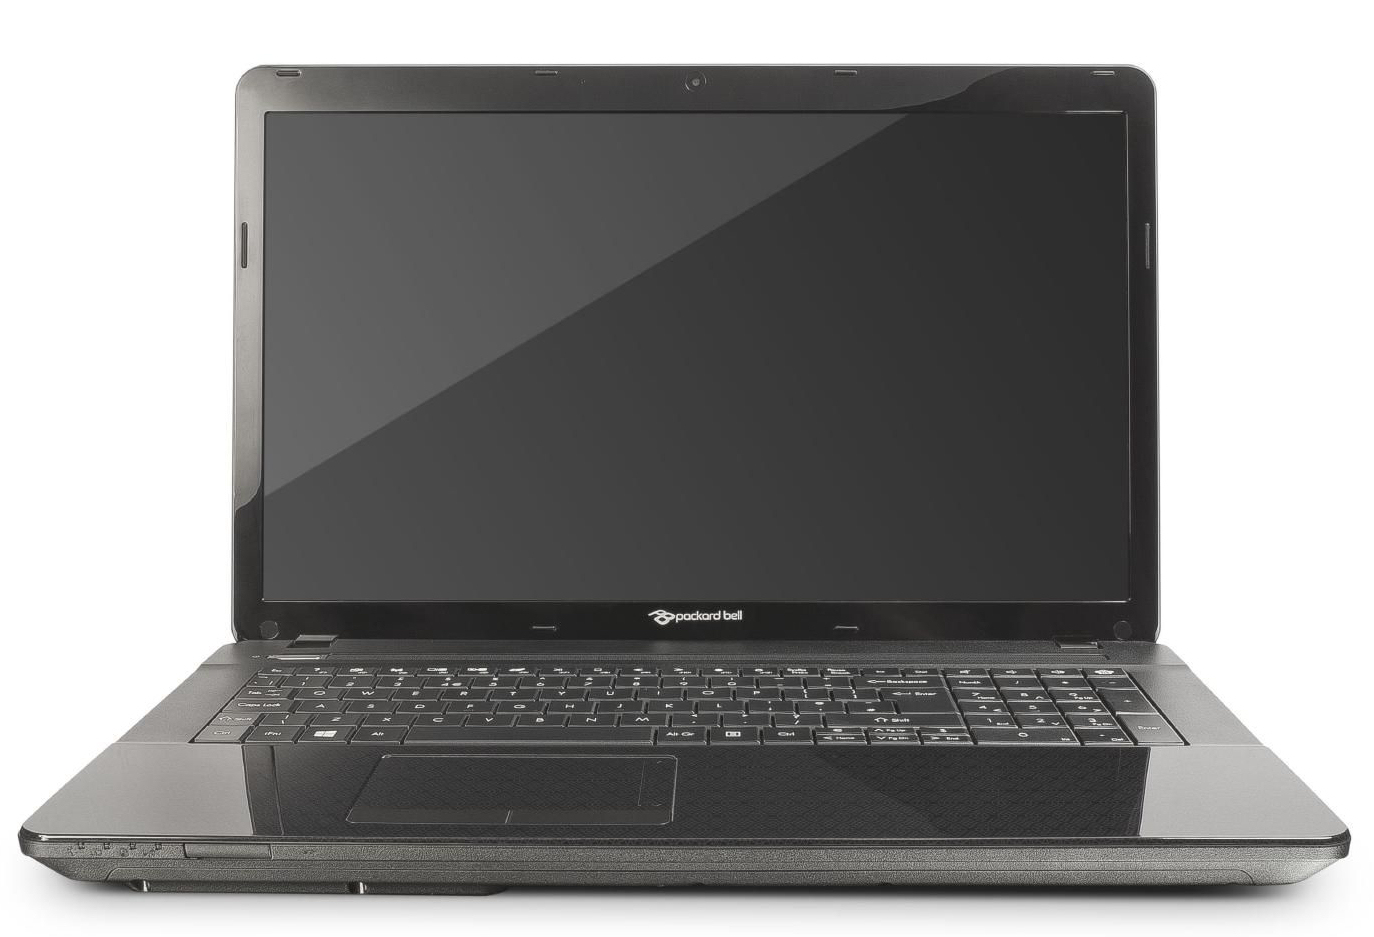 Packard Bell EasyNote LE69KB Broadcom WLAN Drivers for Mac